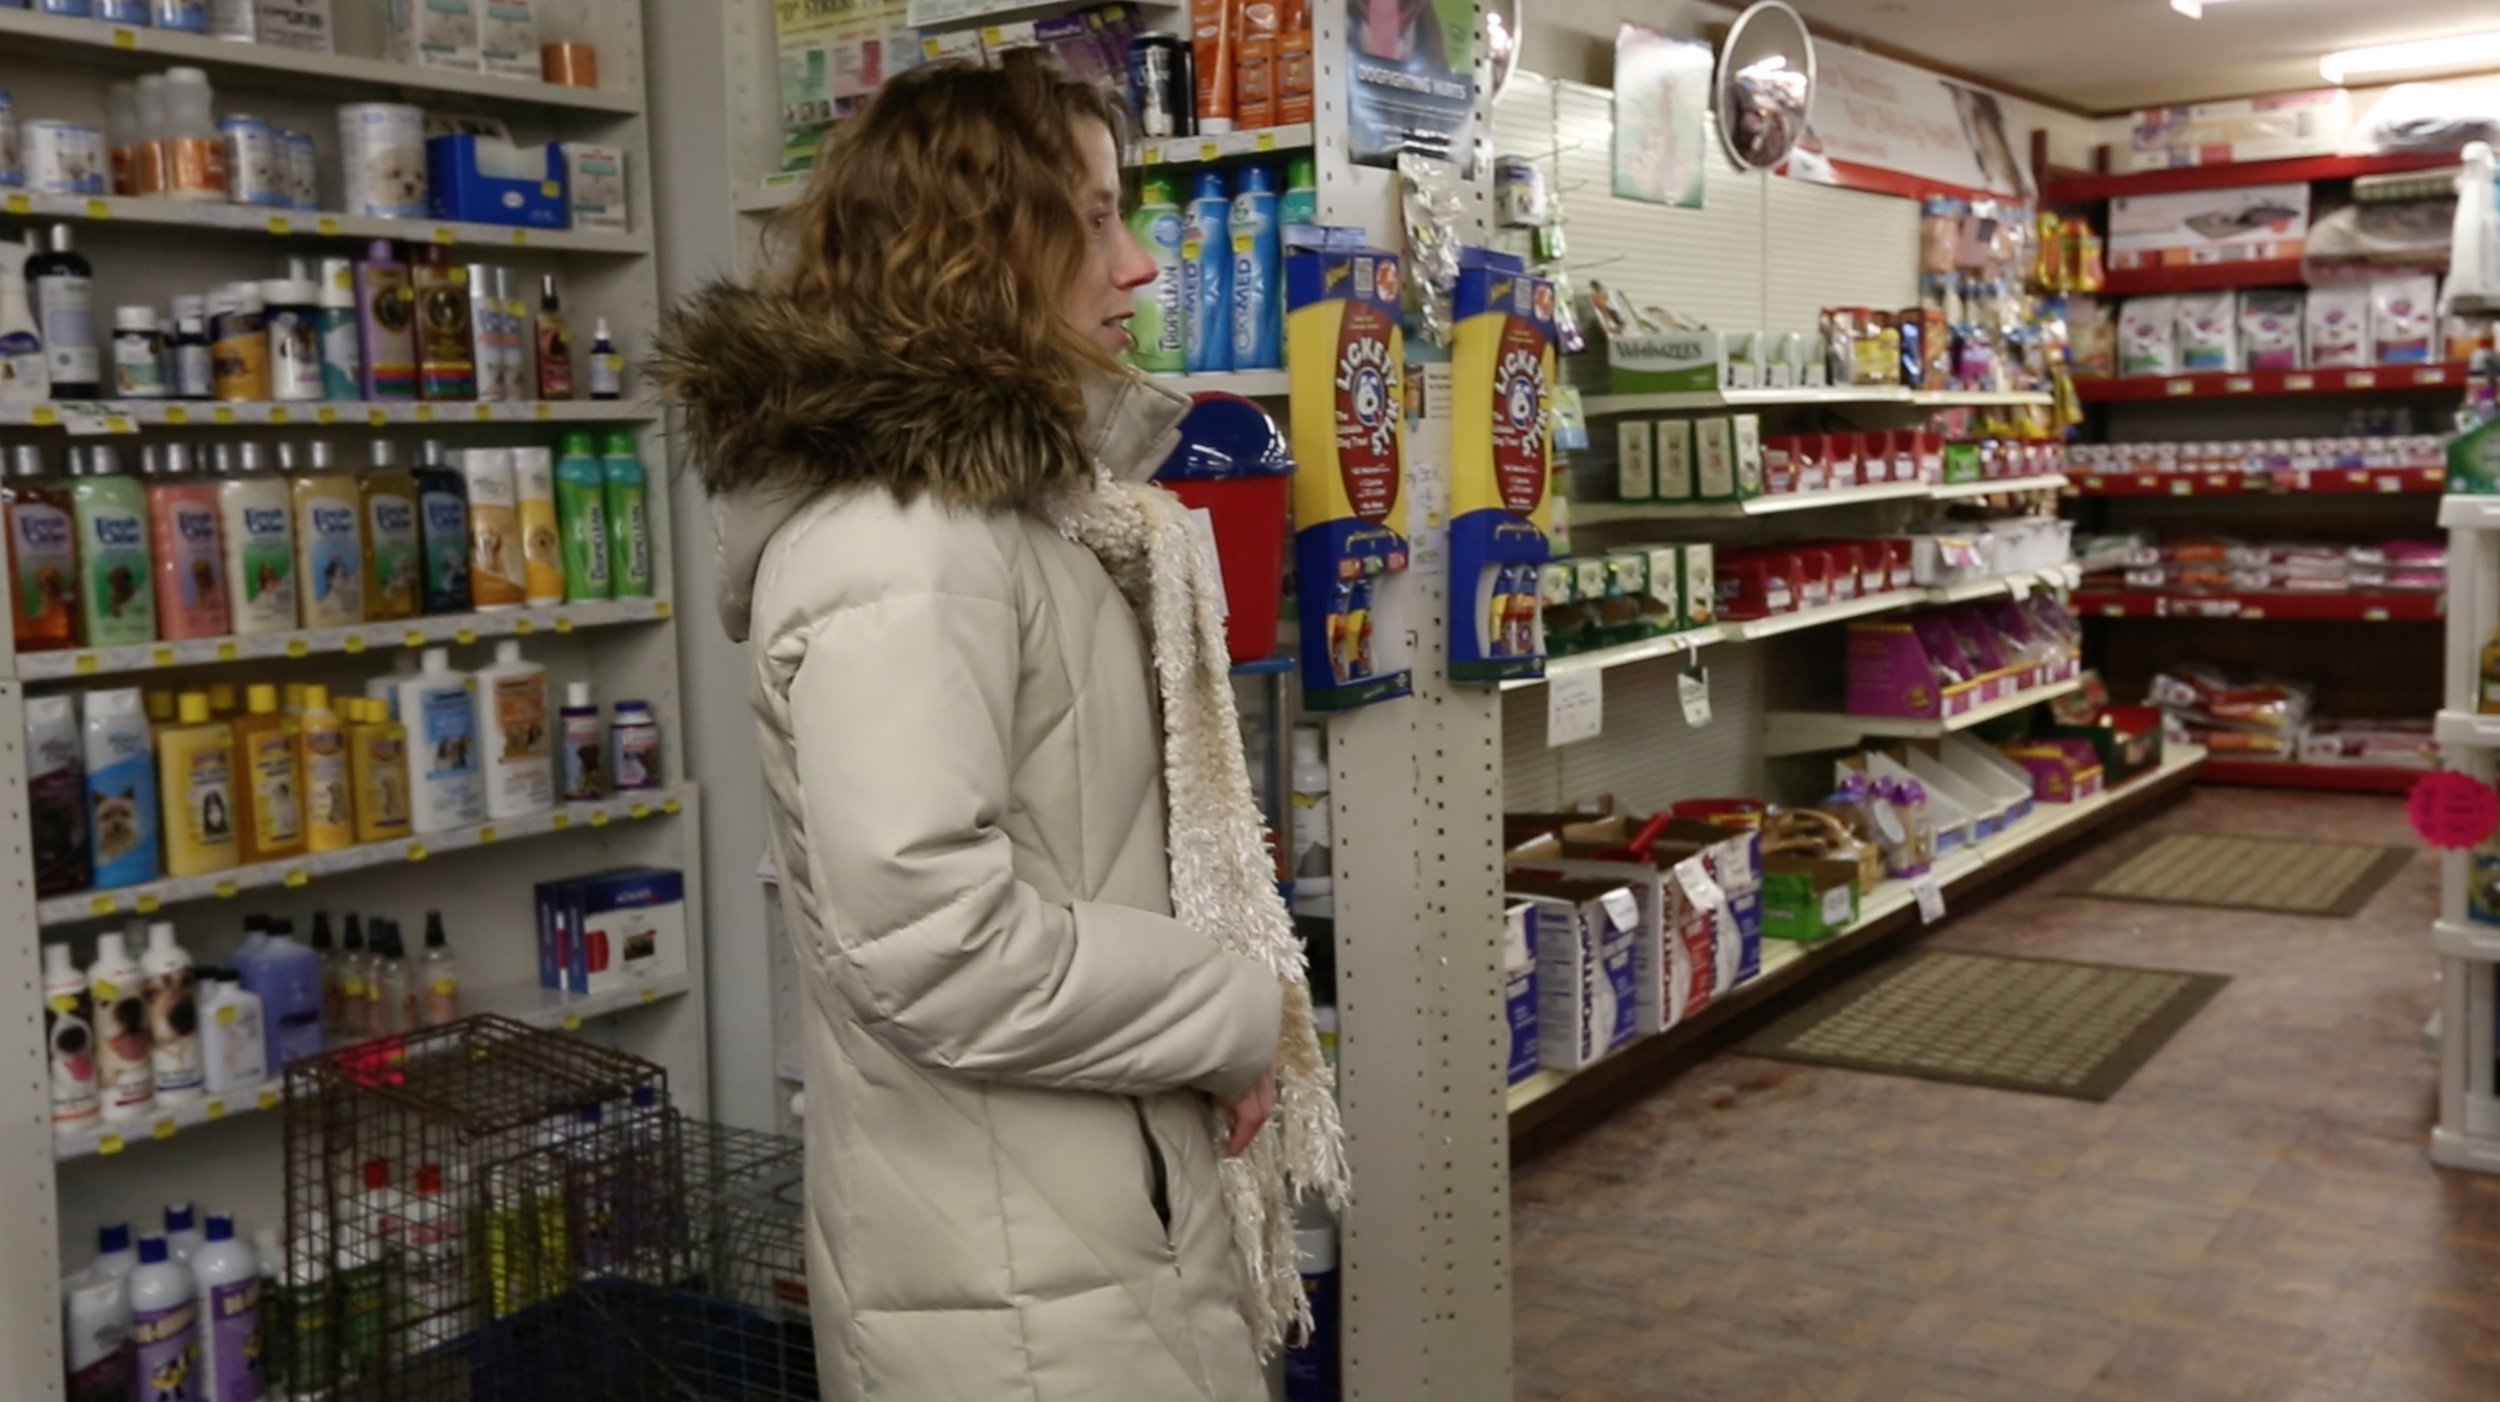 Talking to a store owner participating in Saturday's event